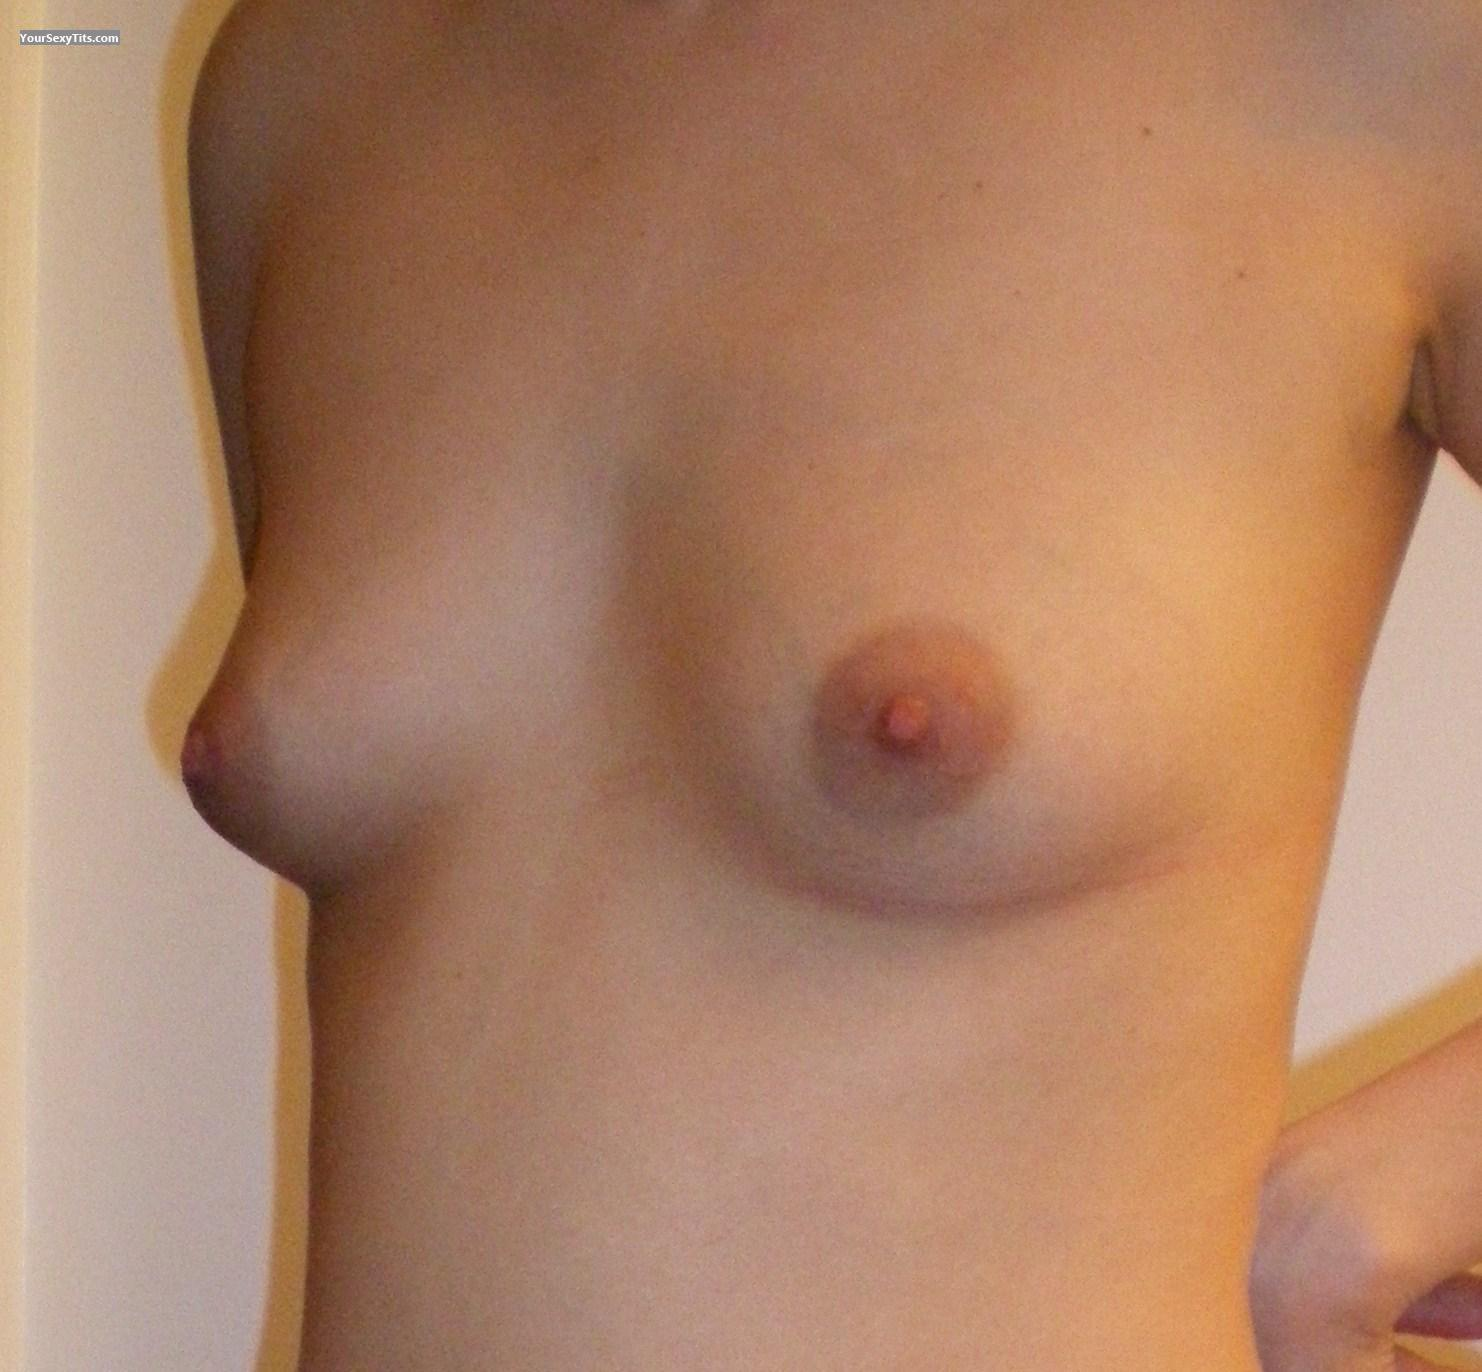 Tit Flash: Small Tits - Metis Girl from Canada